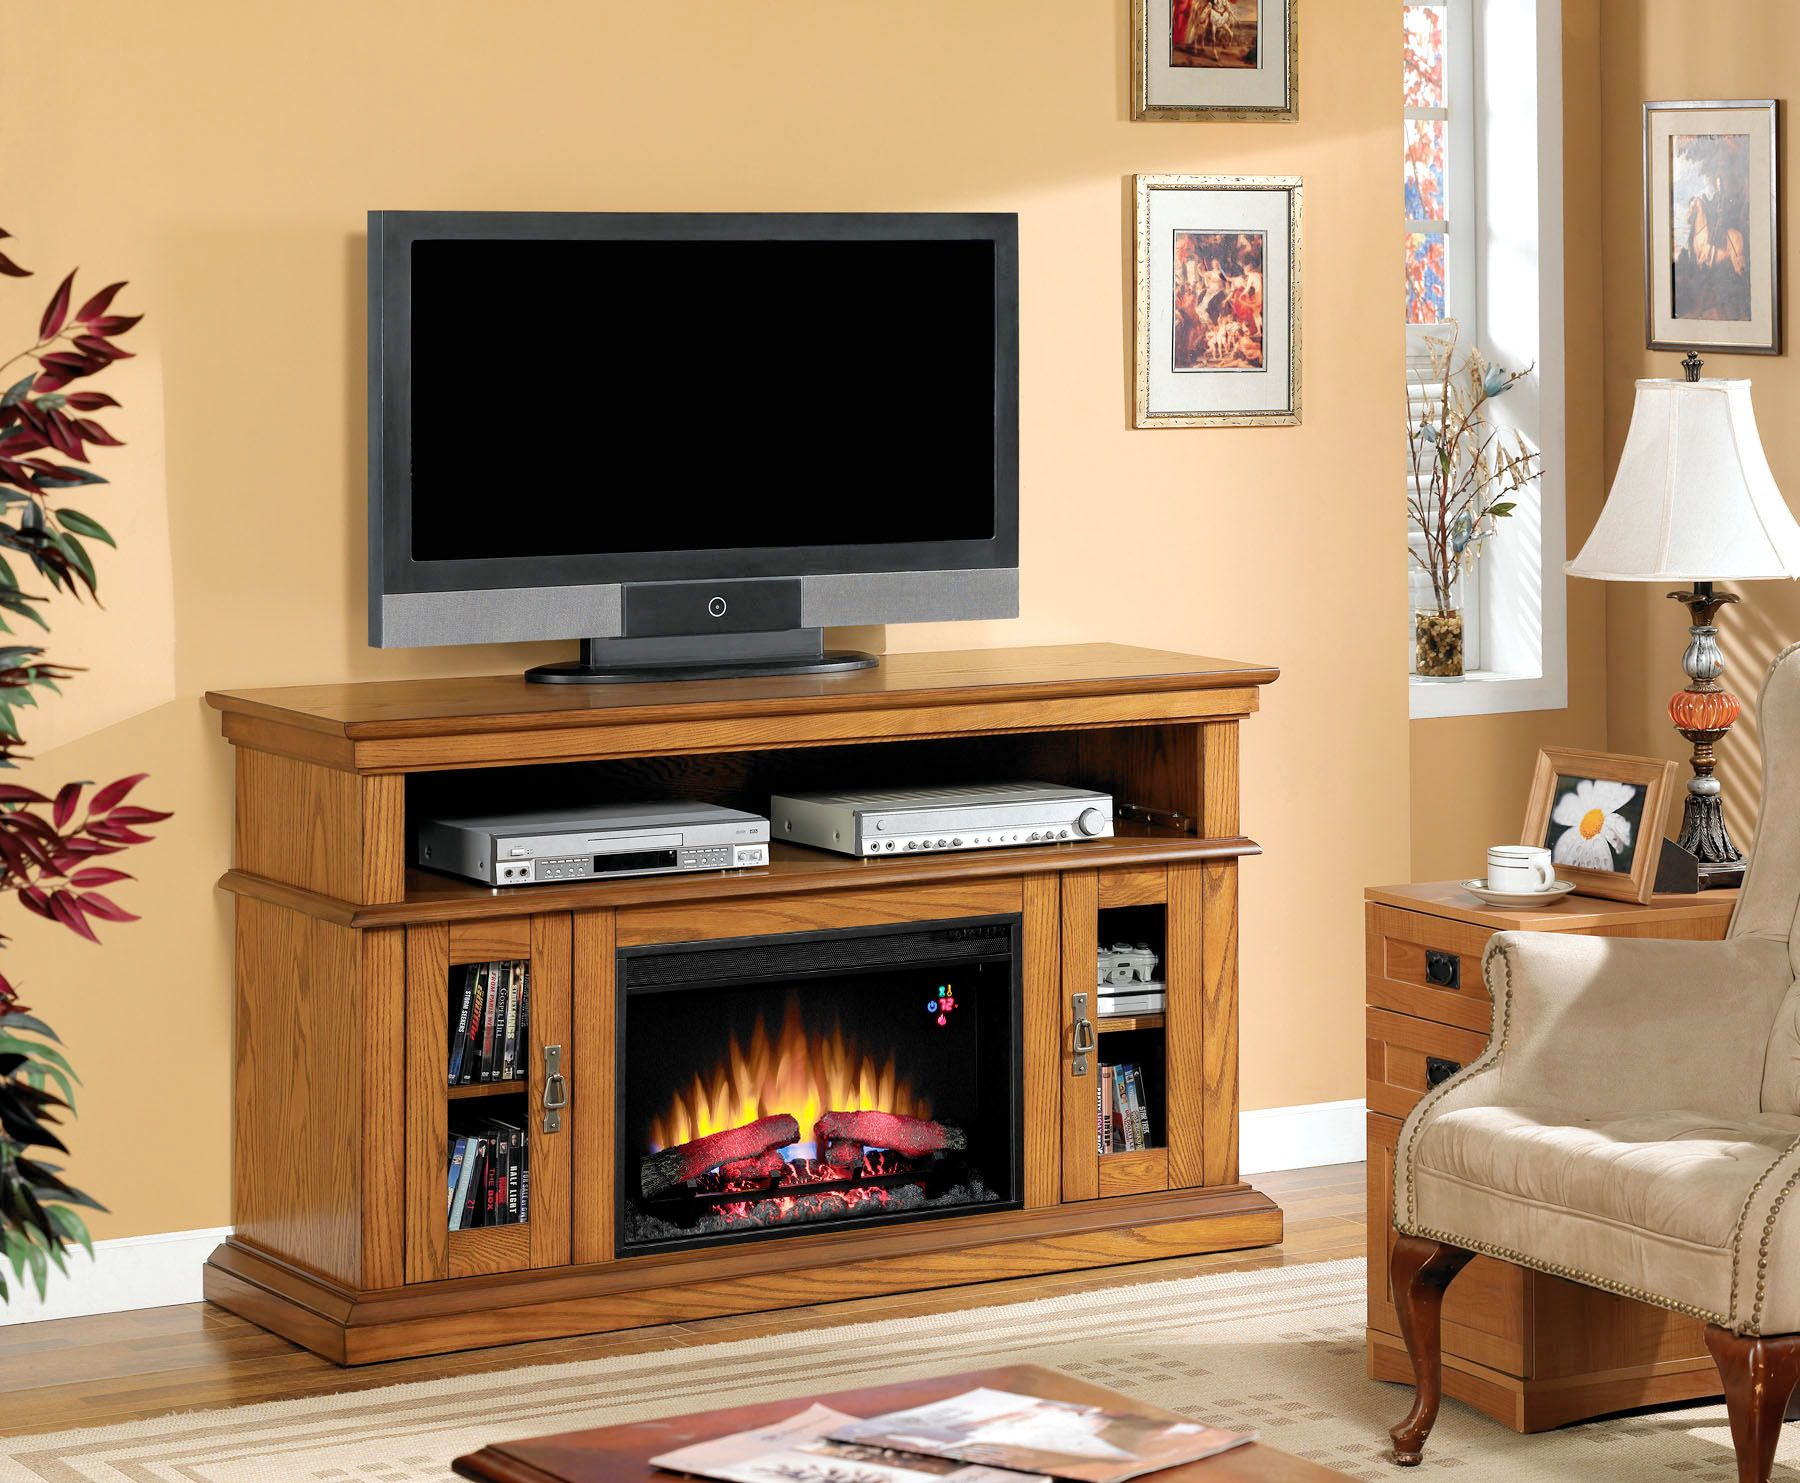 Classic flame belmont 60 quot tv stand with electric fireplace - Find This Pin And More On Classicflame Electric Fireplace Tv Stands